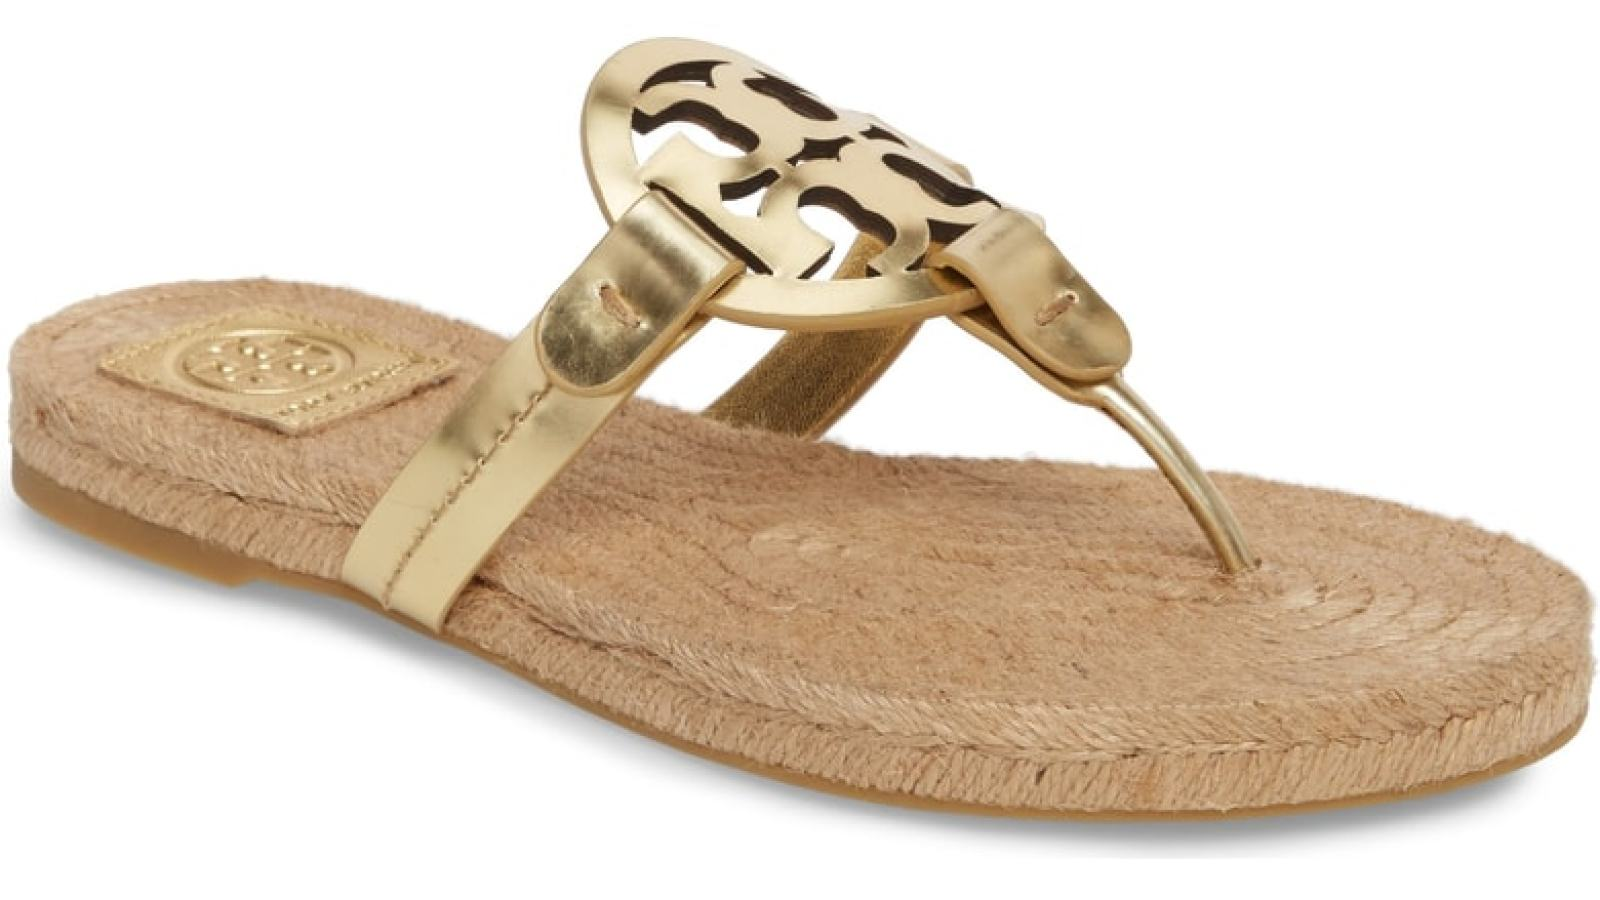 0994c9dfd50 So Many Tory Burch Sandals Are On Sale at Nordstrom and We re Already  Stocking Up for Next Summer